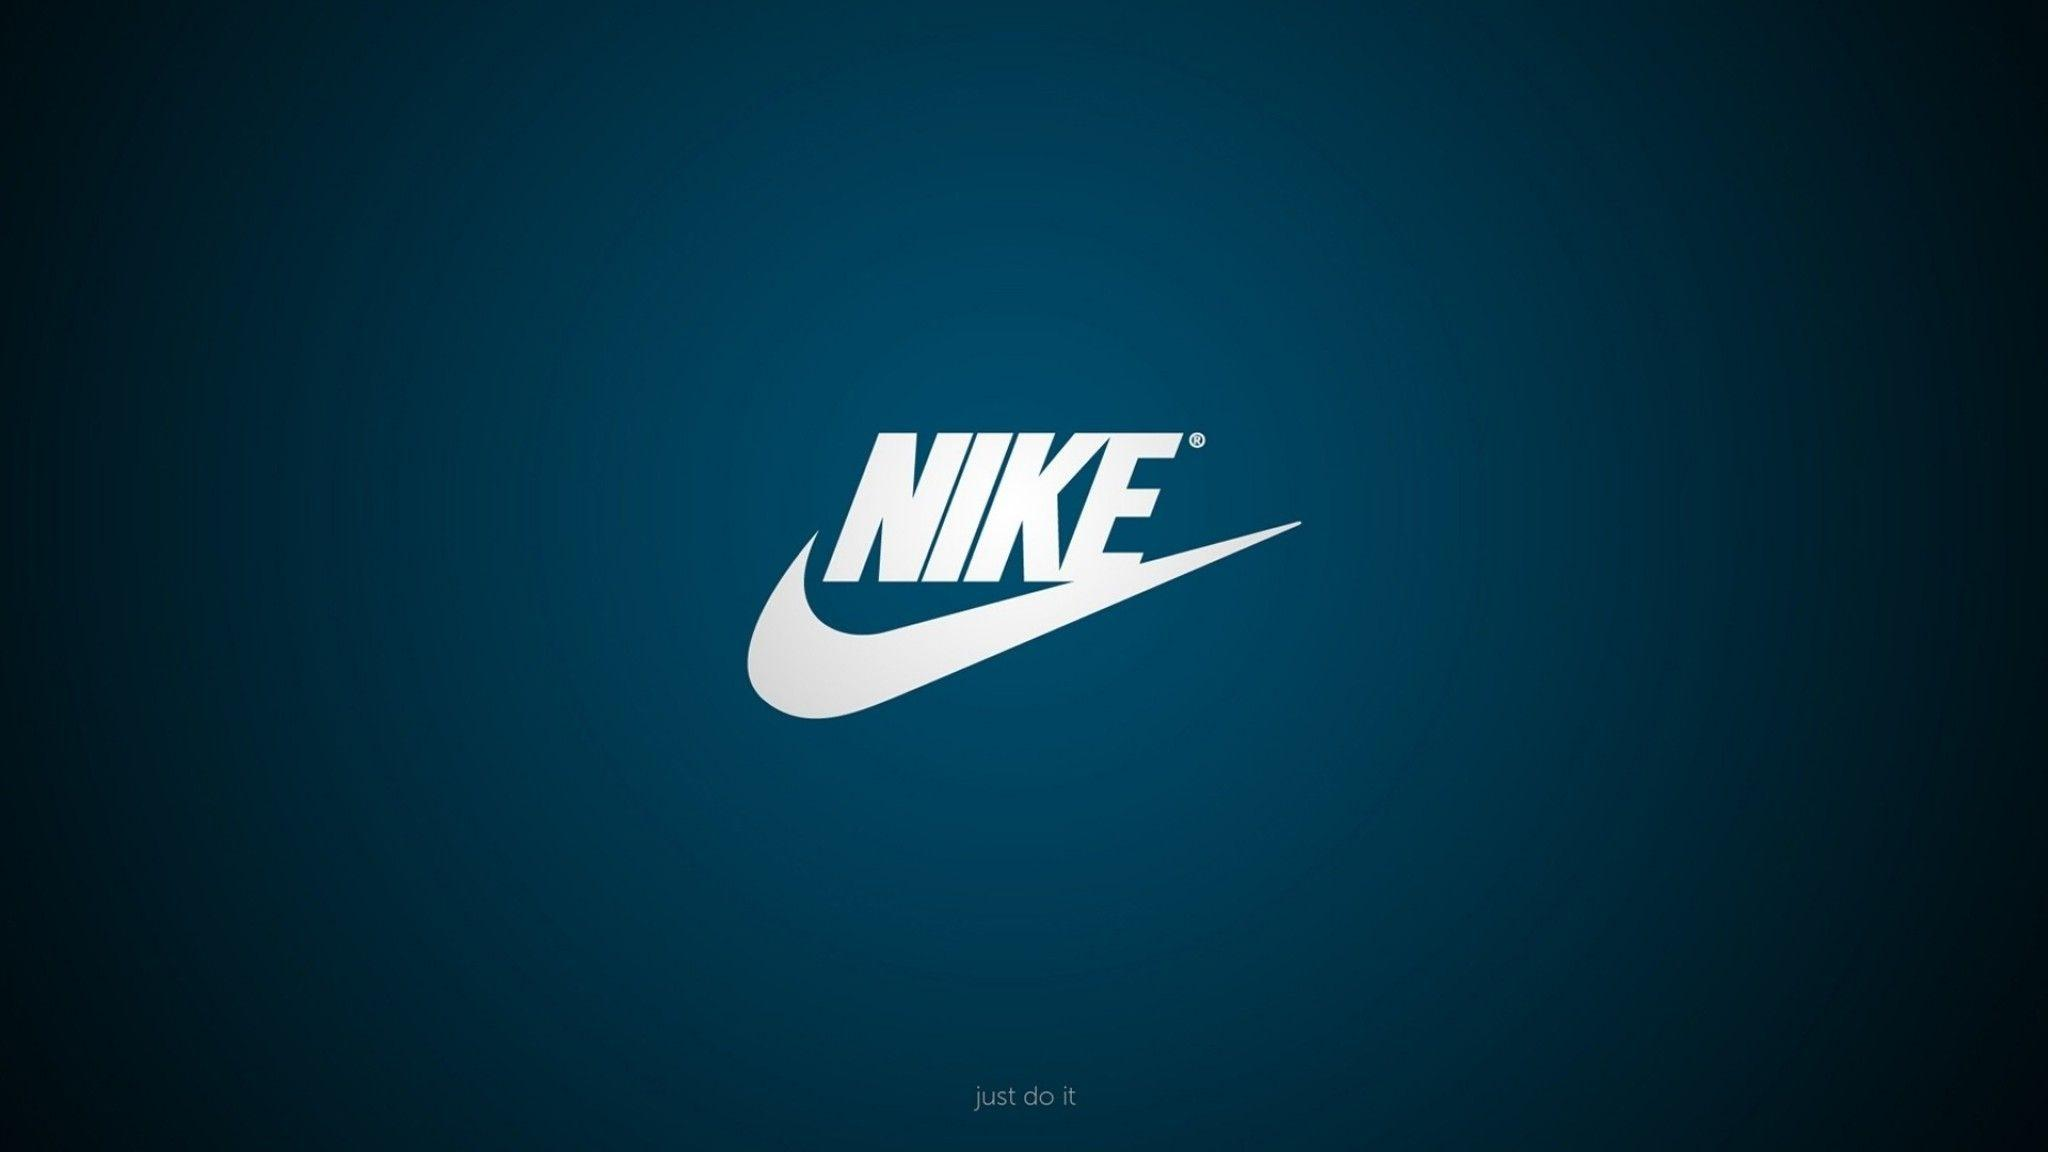 Nike logo sports lettering minimalism online Wallpapers 2048x1152